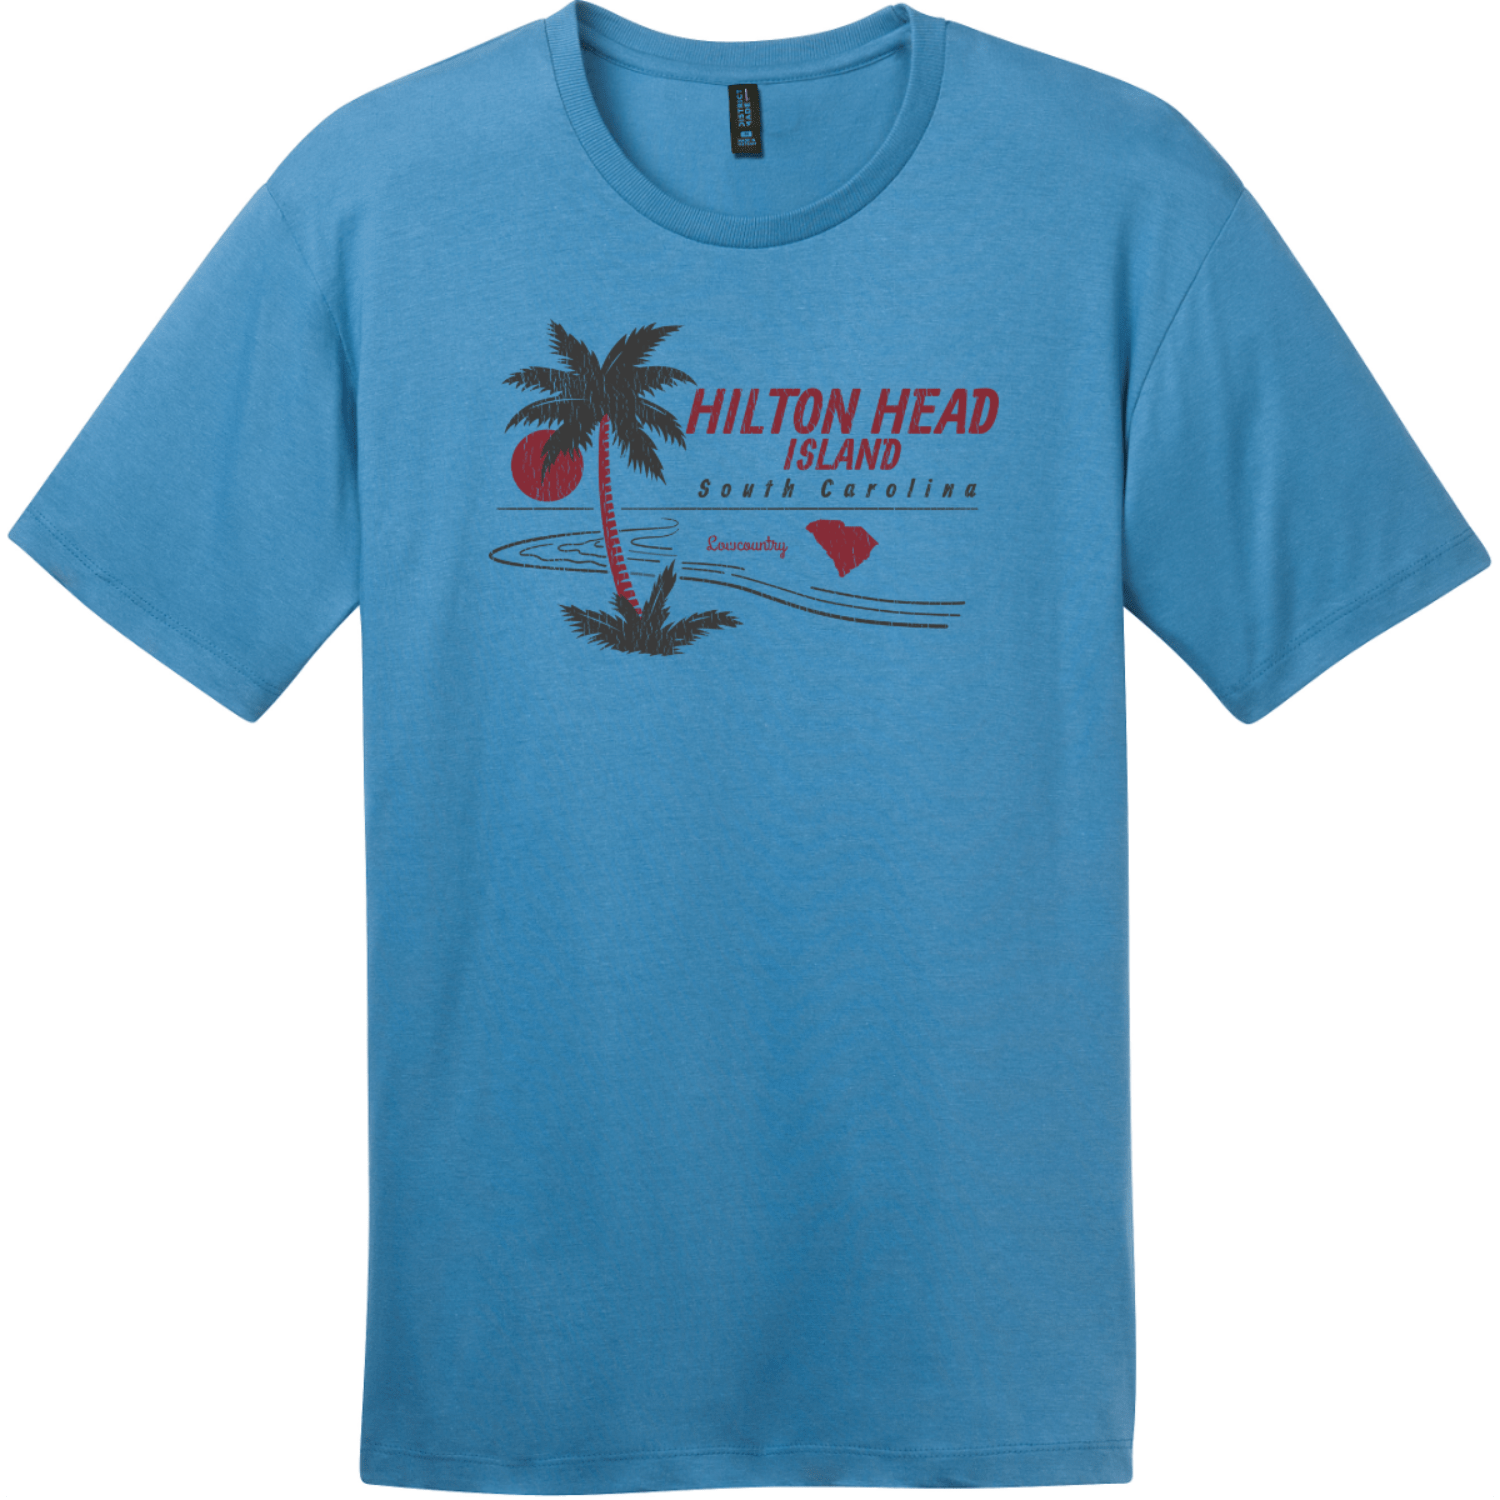 Hilton Head Island Lowcountry T-Shirt Clean Denim District Perfect Weight Tee DT104